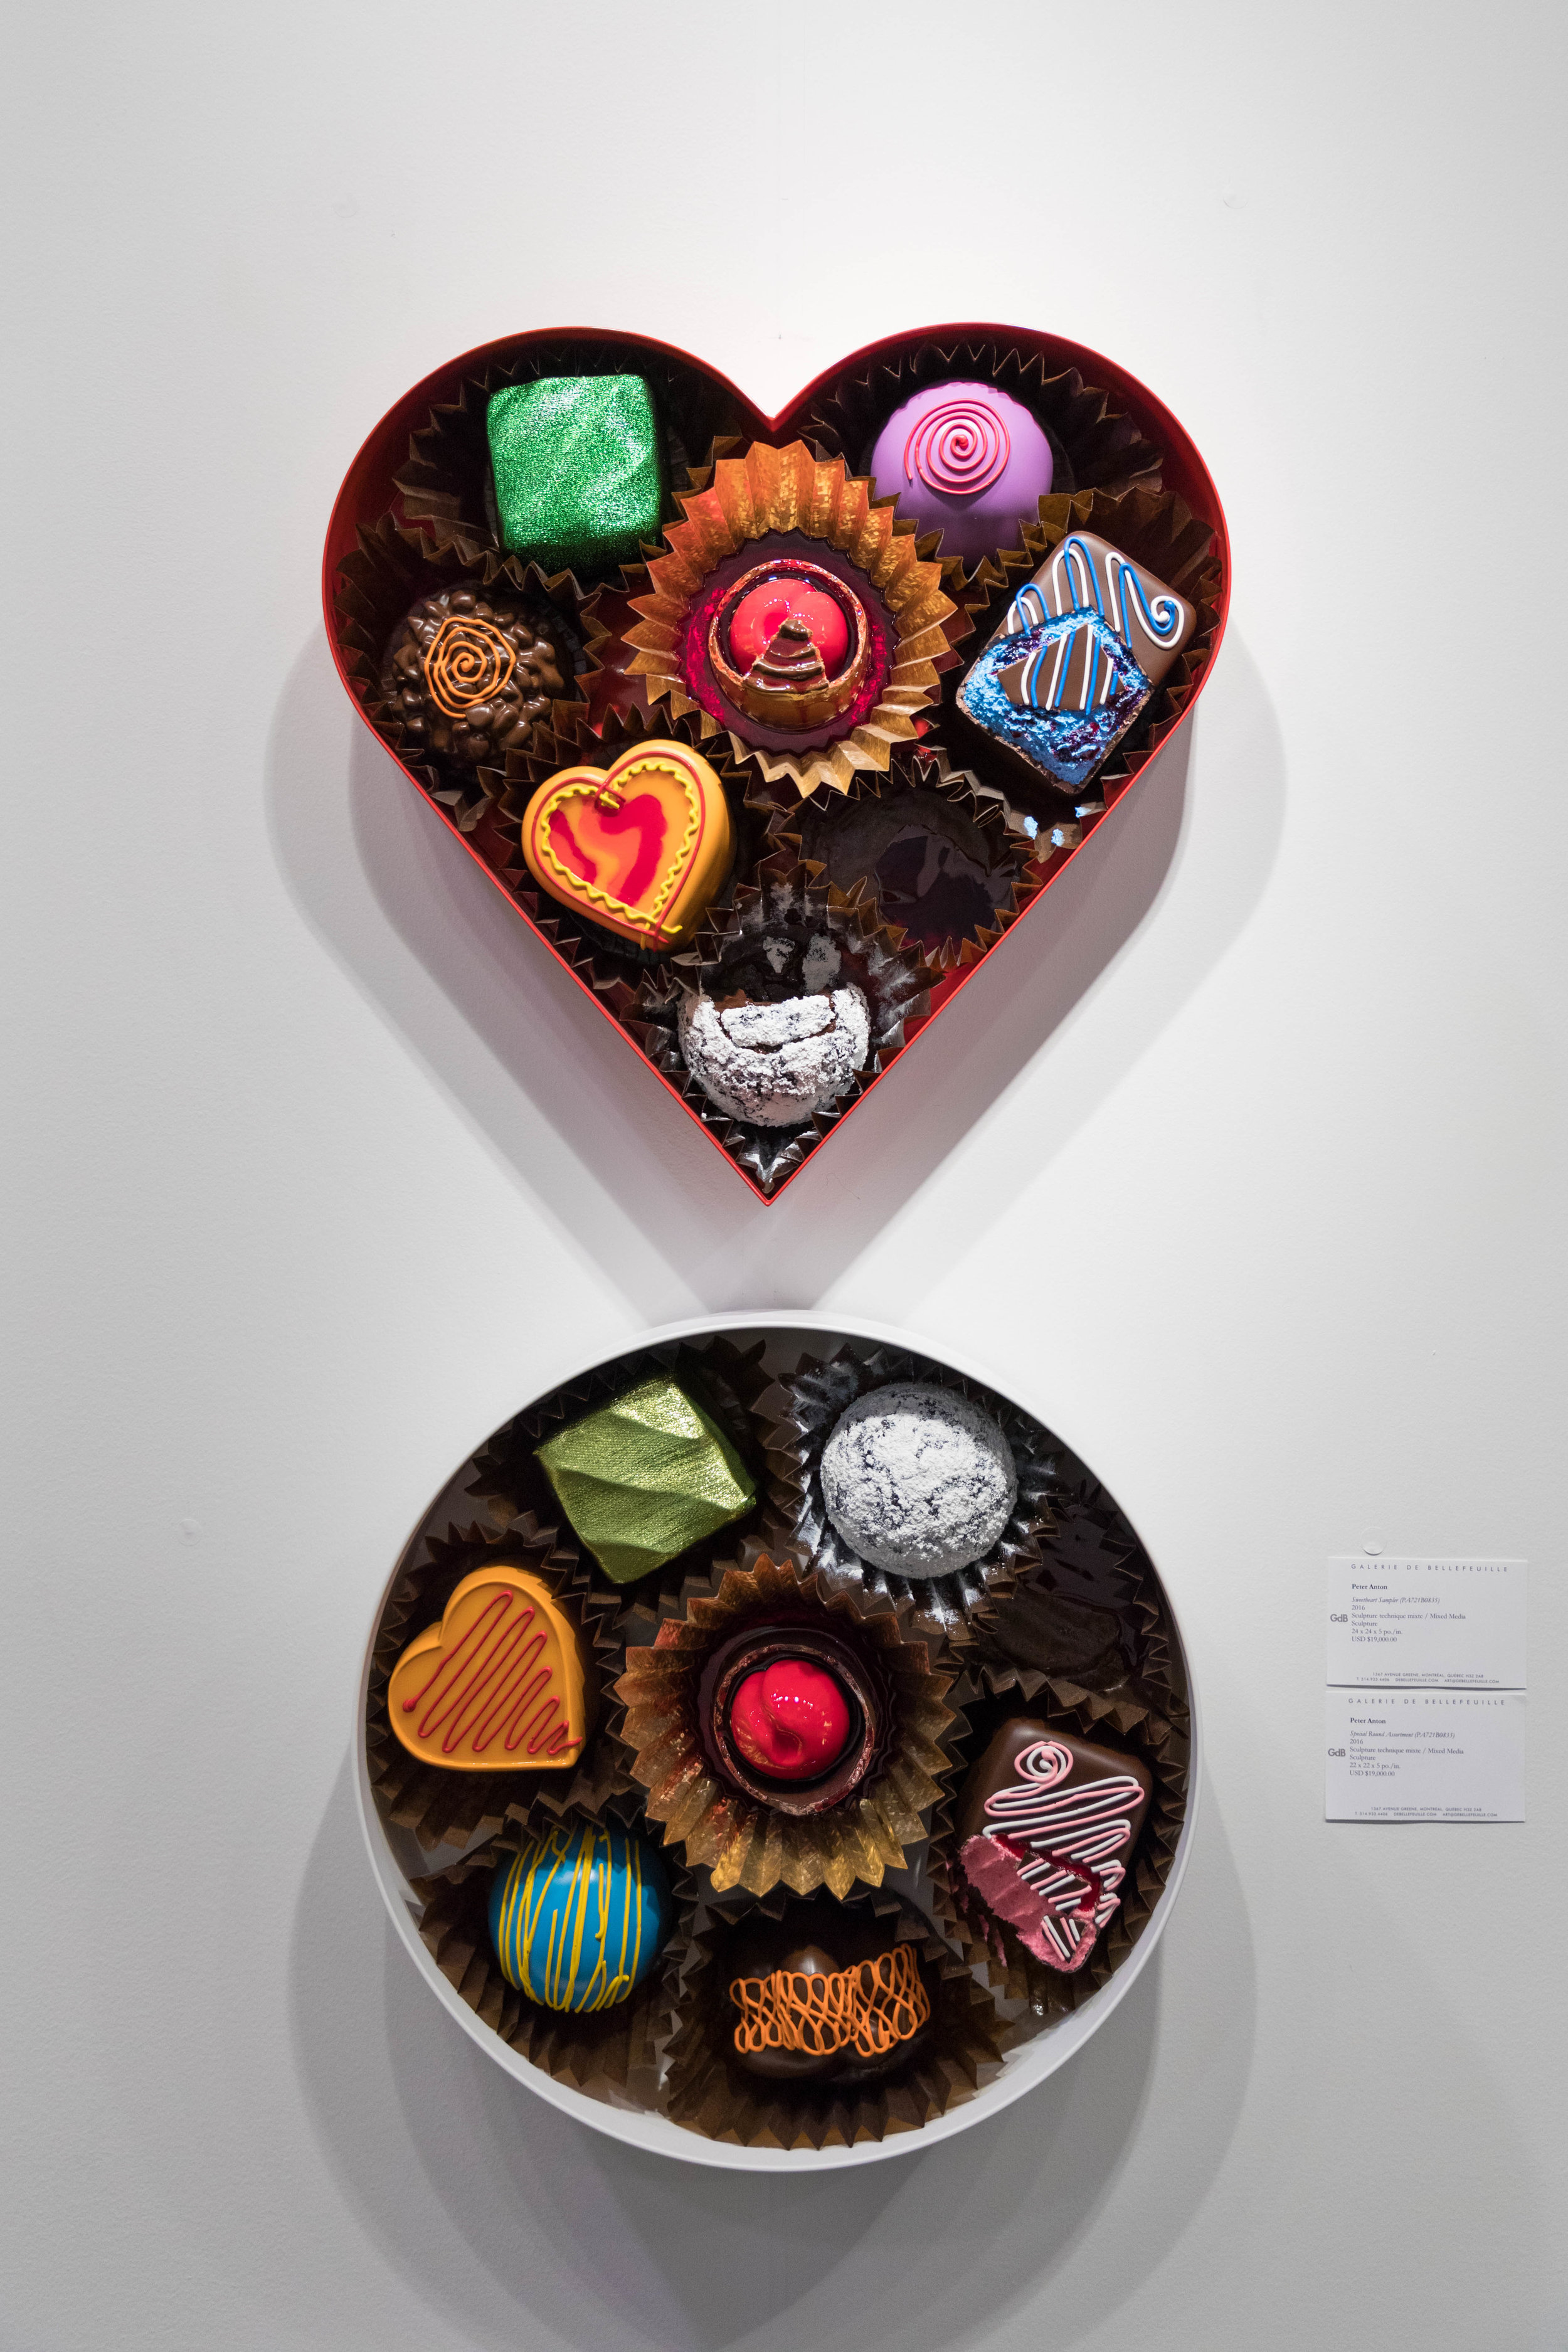 (T)  Sweetheart Sampler (PA721B0835),  2016 and (B)  Special Round Assortment (PA721B0833) 2016  Peter Anton